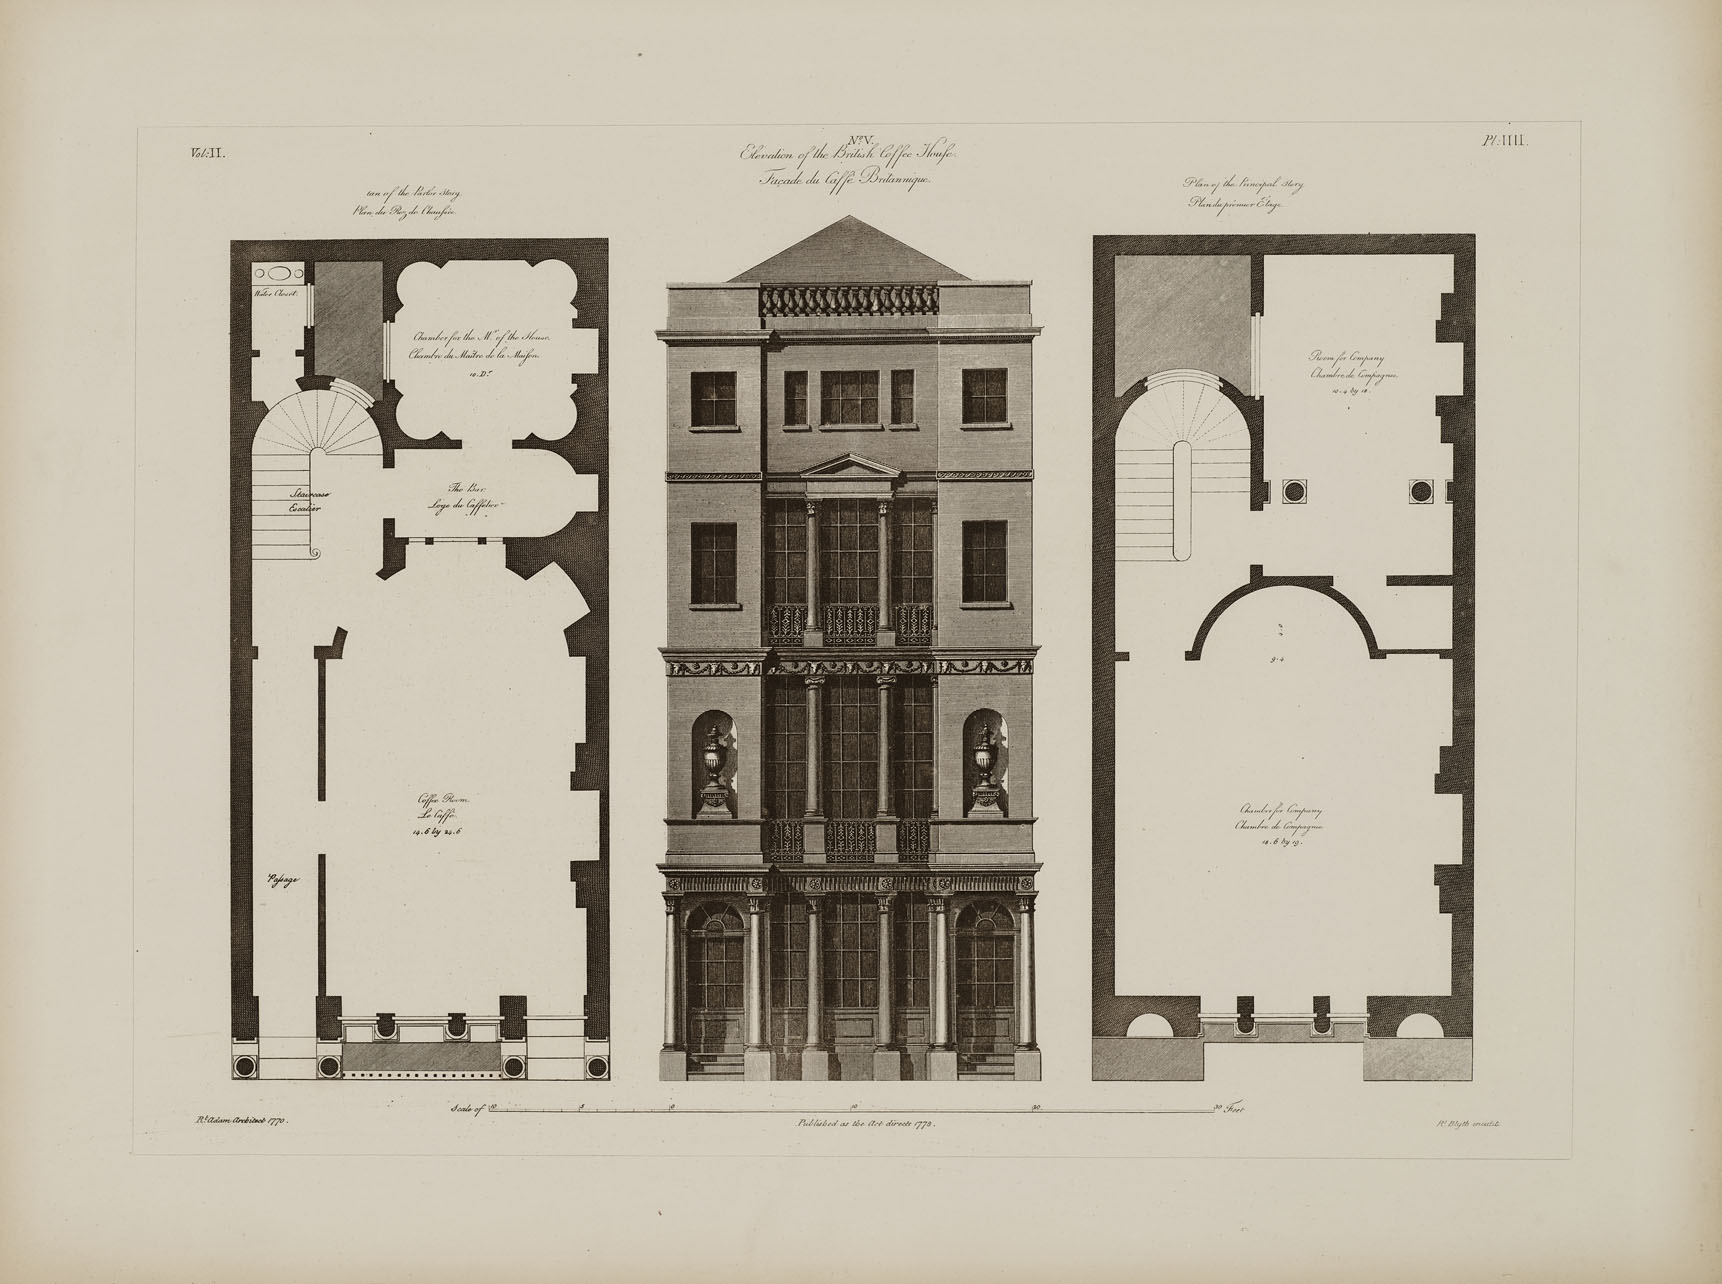 robert-and-james-adams-the-works-in-architecture-1777.jpg